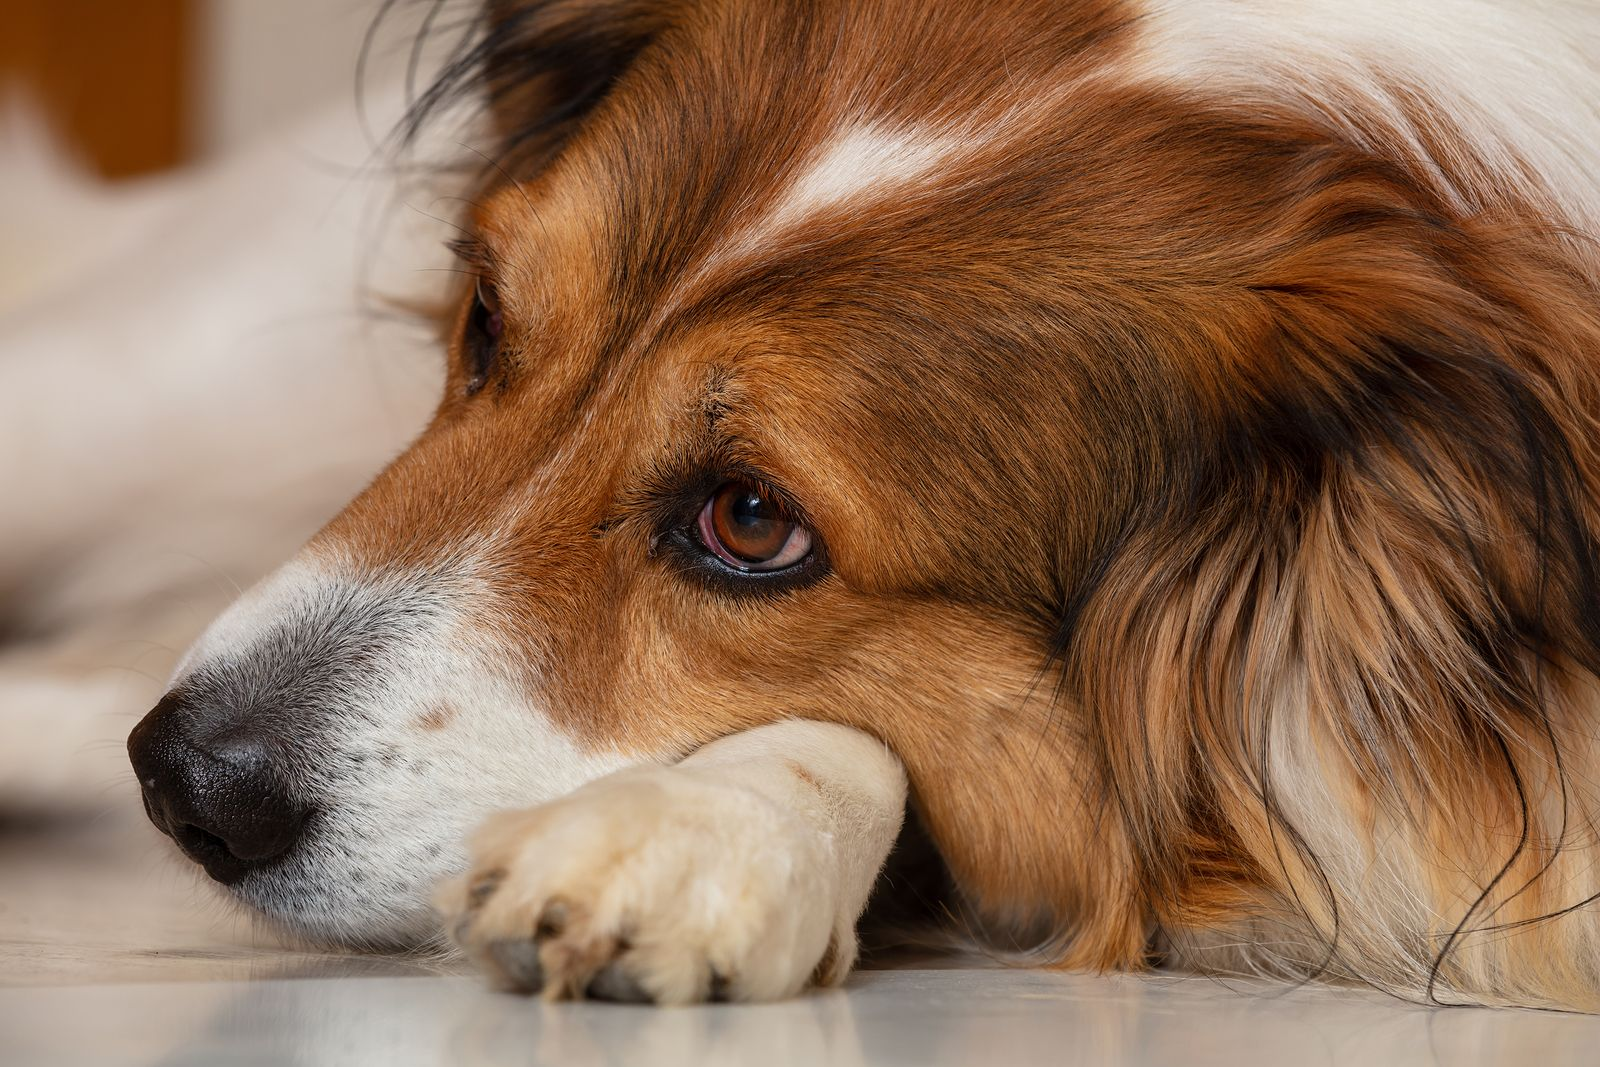 Sad-Dog-Cute-White-Brown-Dog--287263330